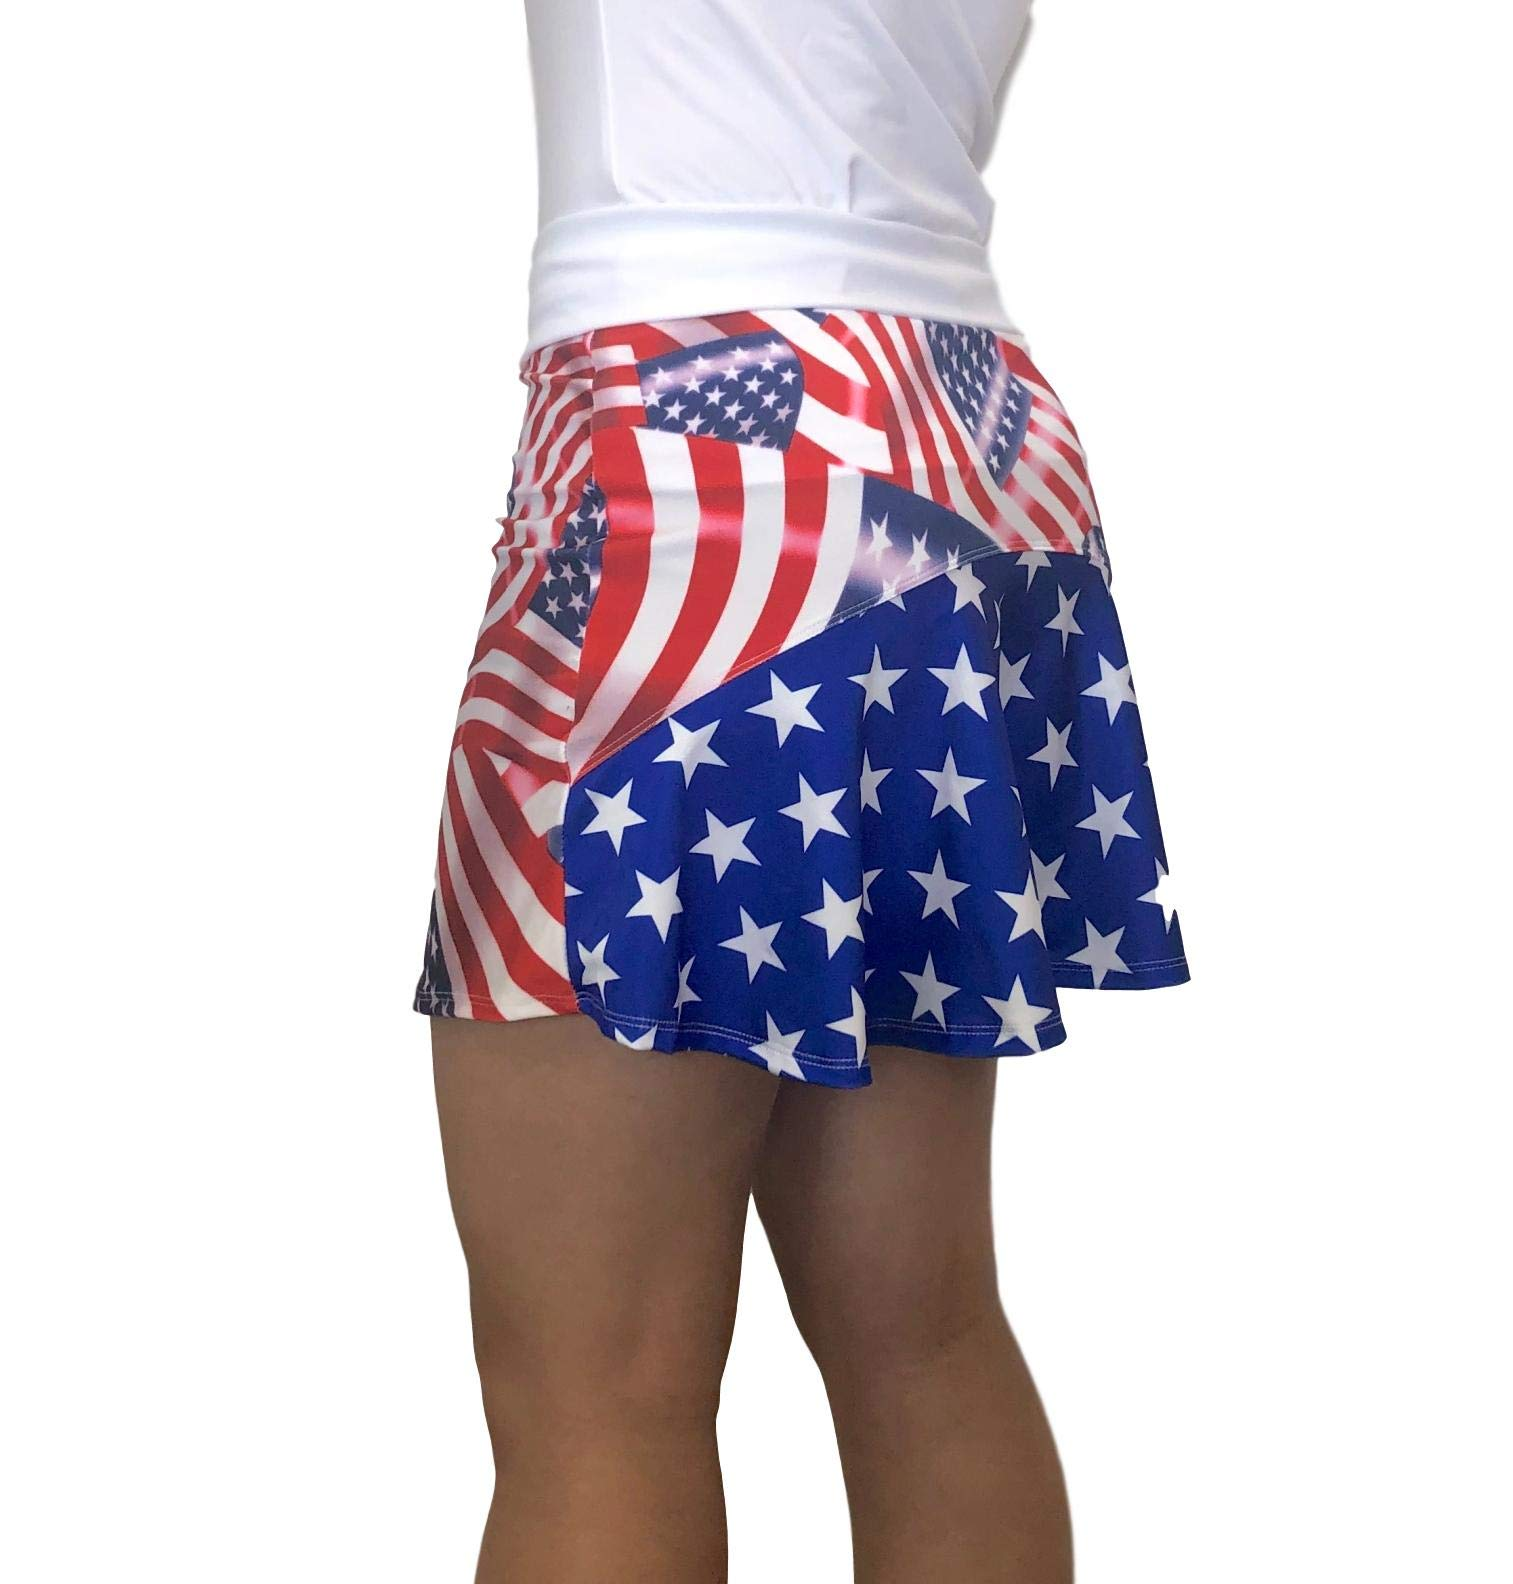 Smash Dandy American Flag Flutter Style Golf/Tennis Skort/Skirt (Medium) by Smash Dandy